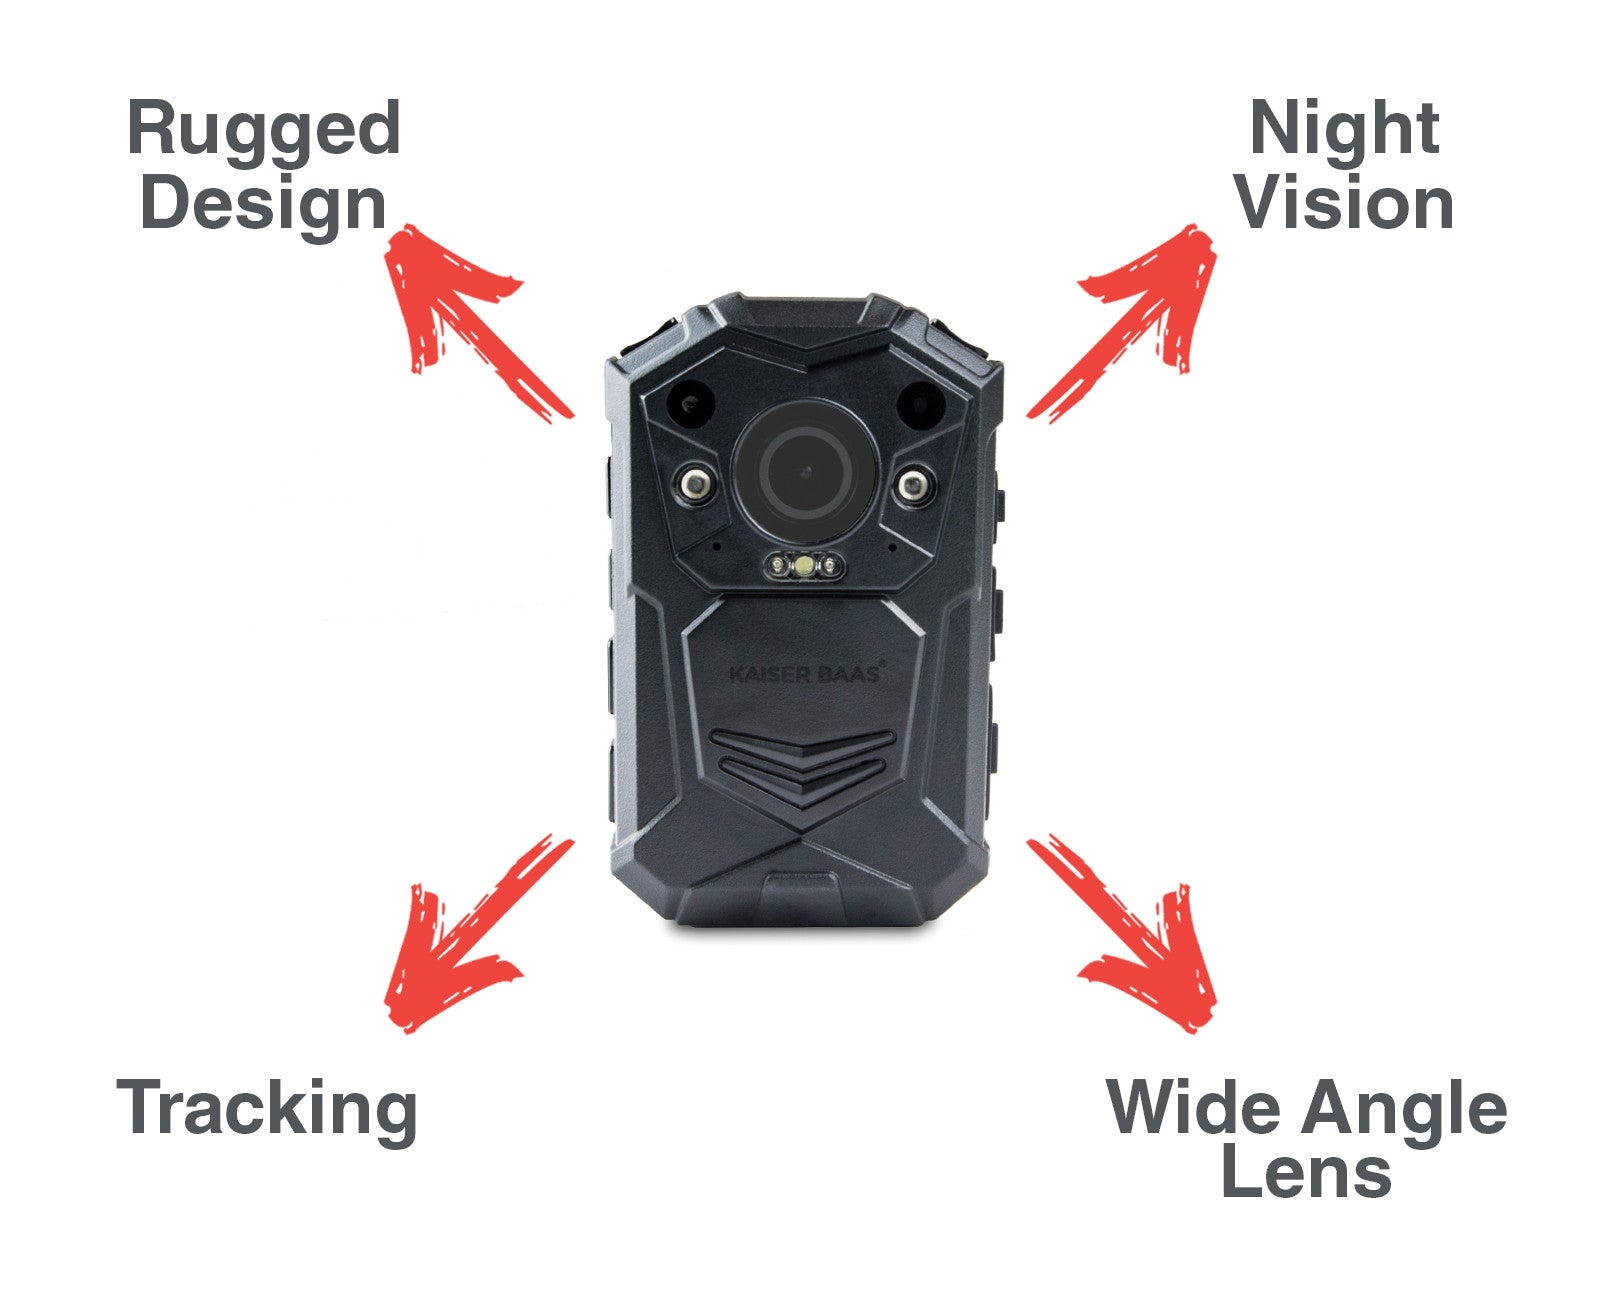 k10 camera features